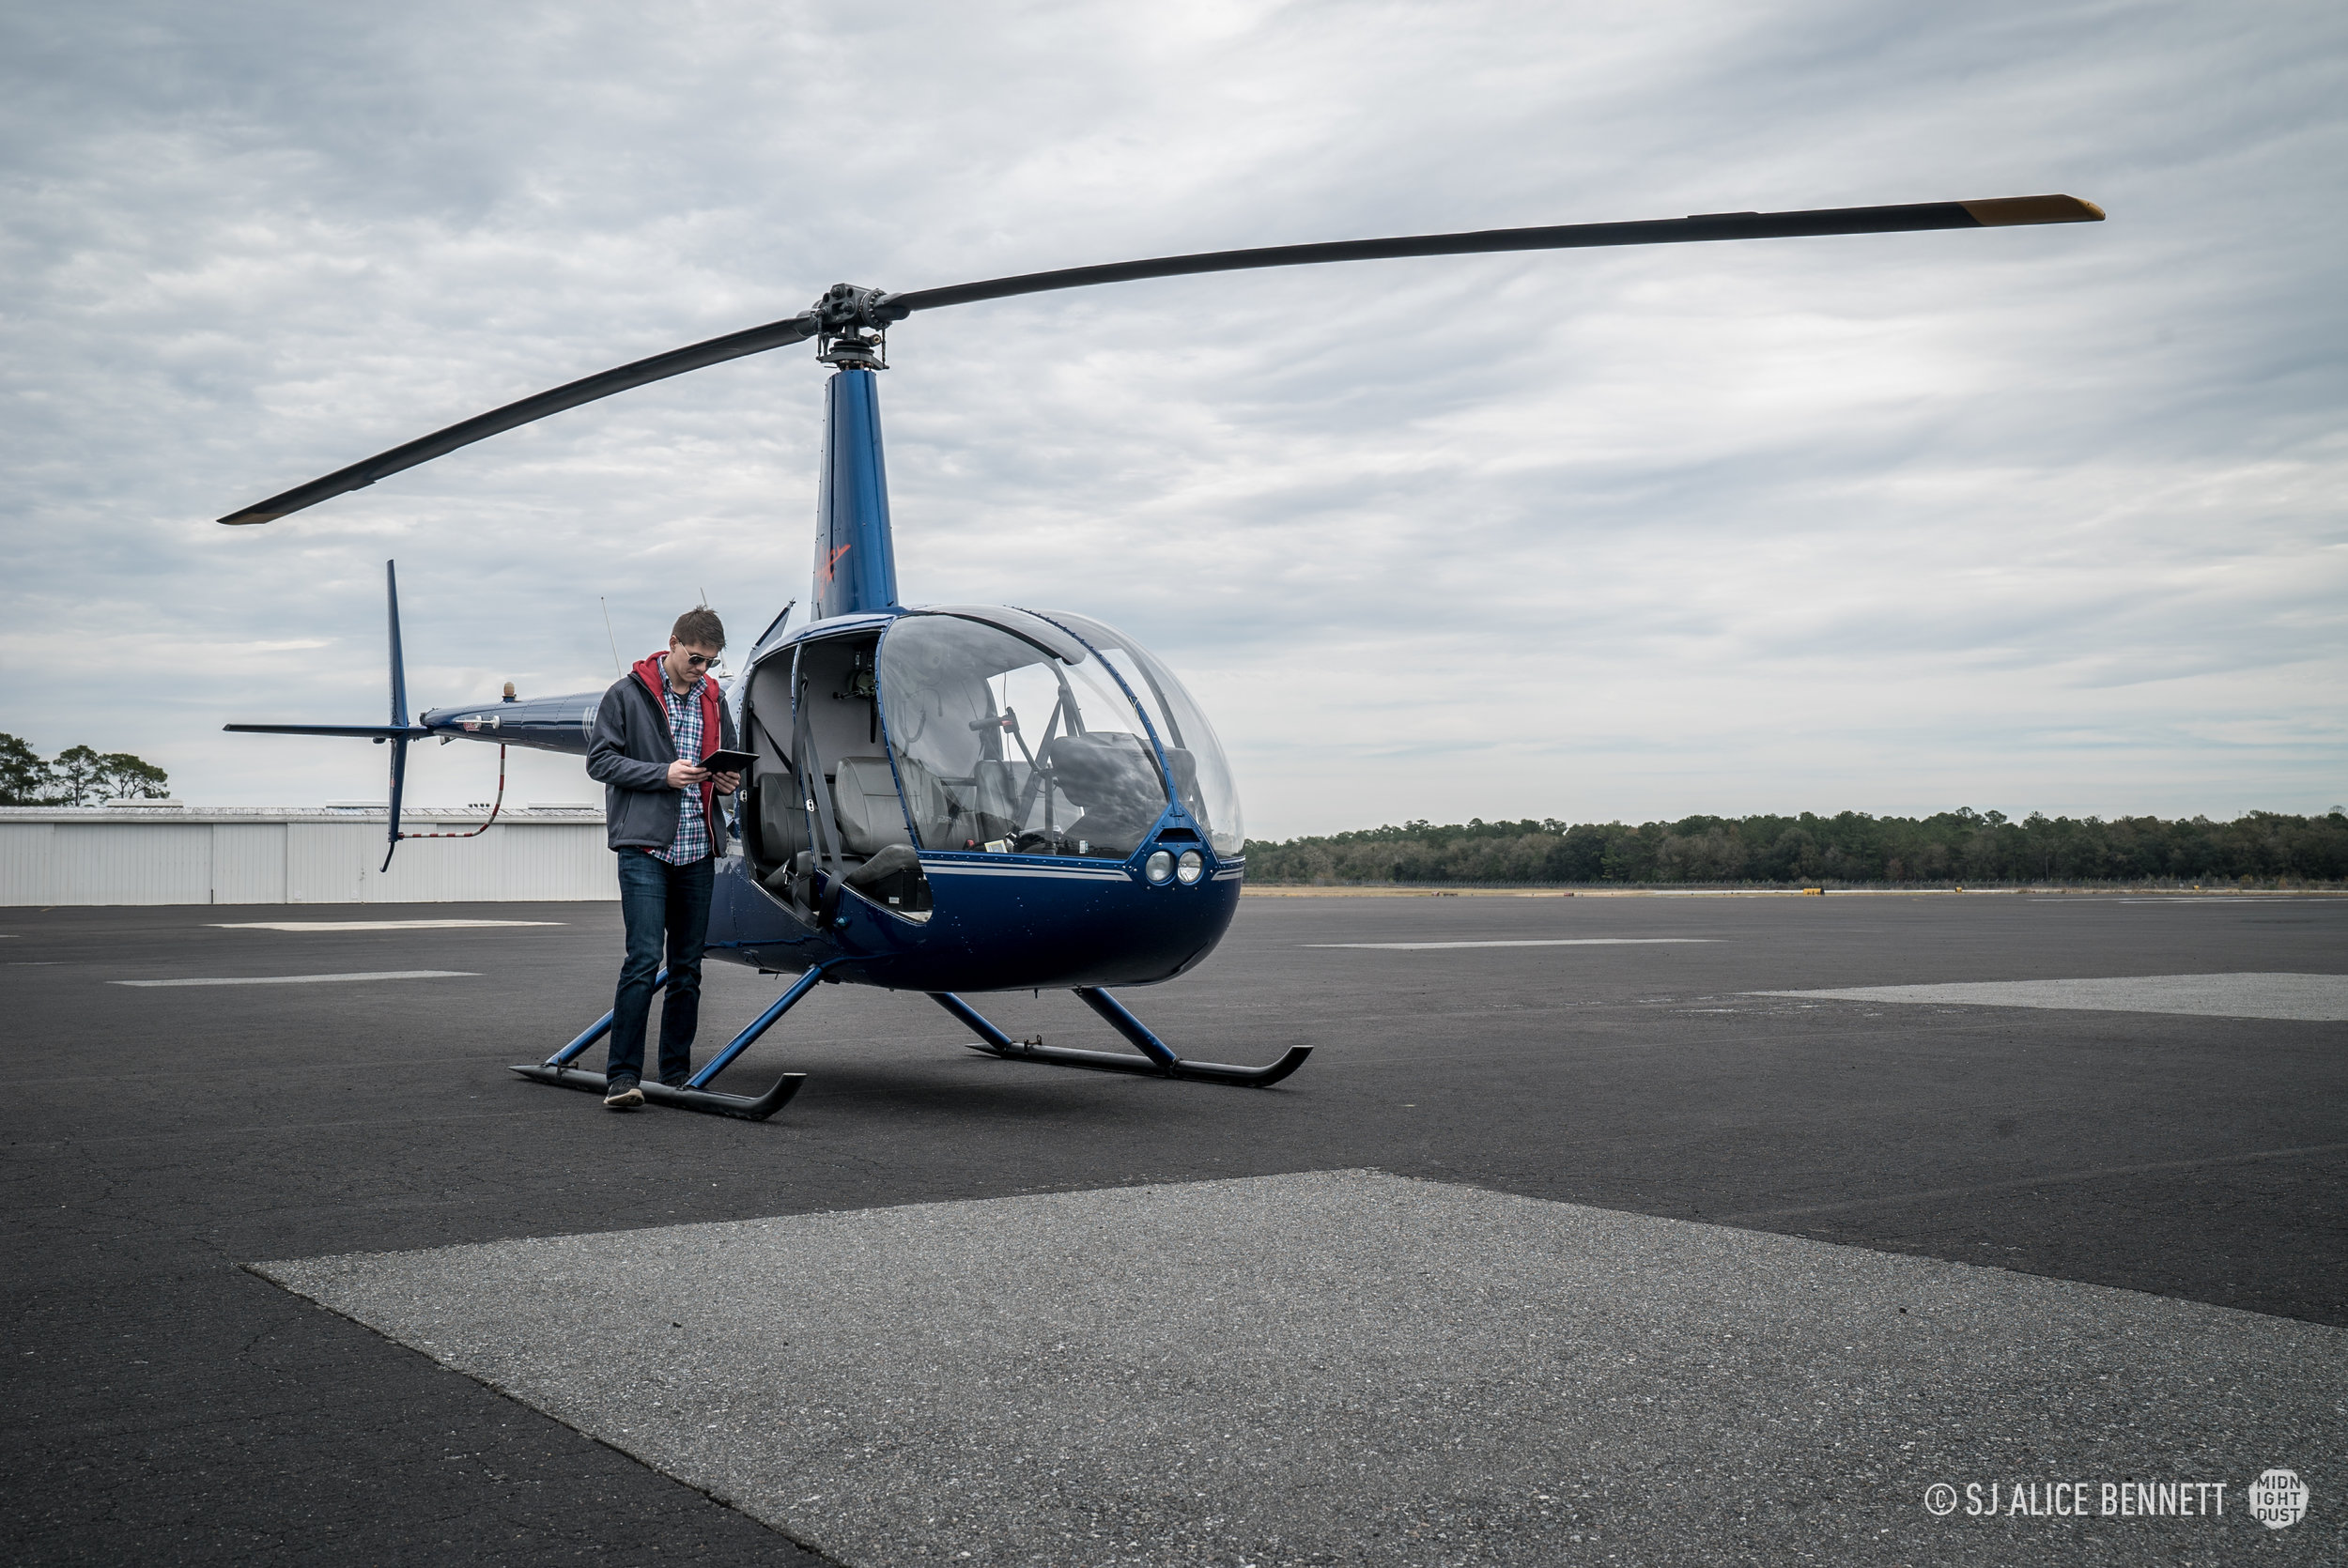 2018_12_19_Helicopter-5.jpg